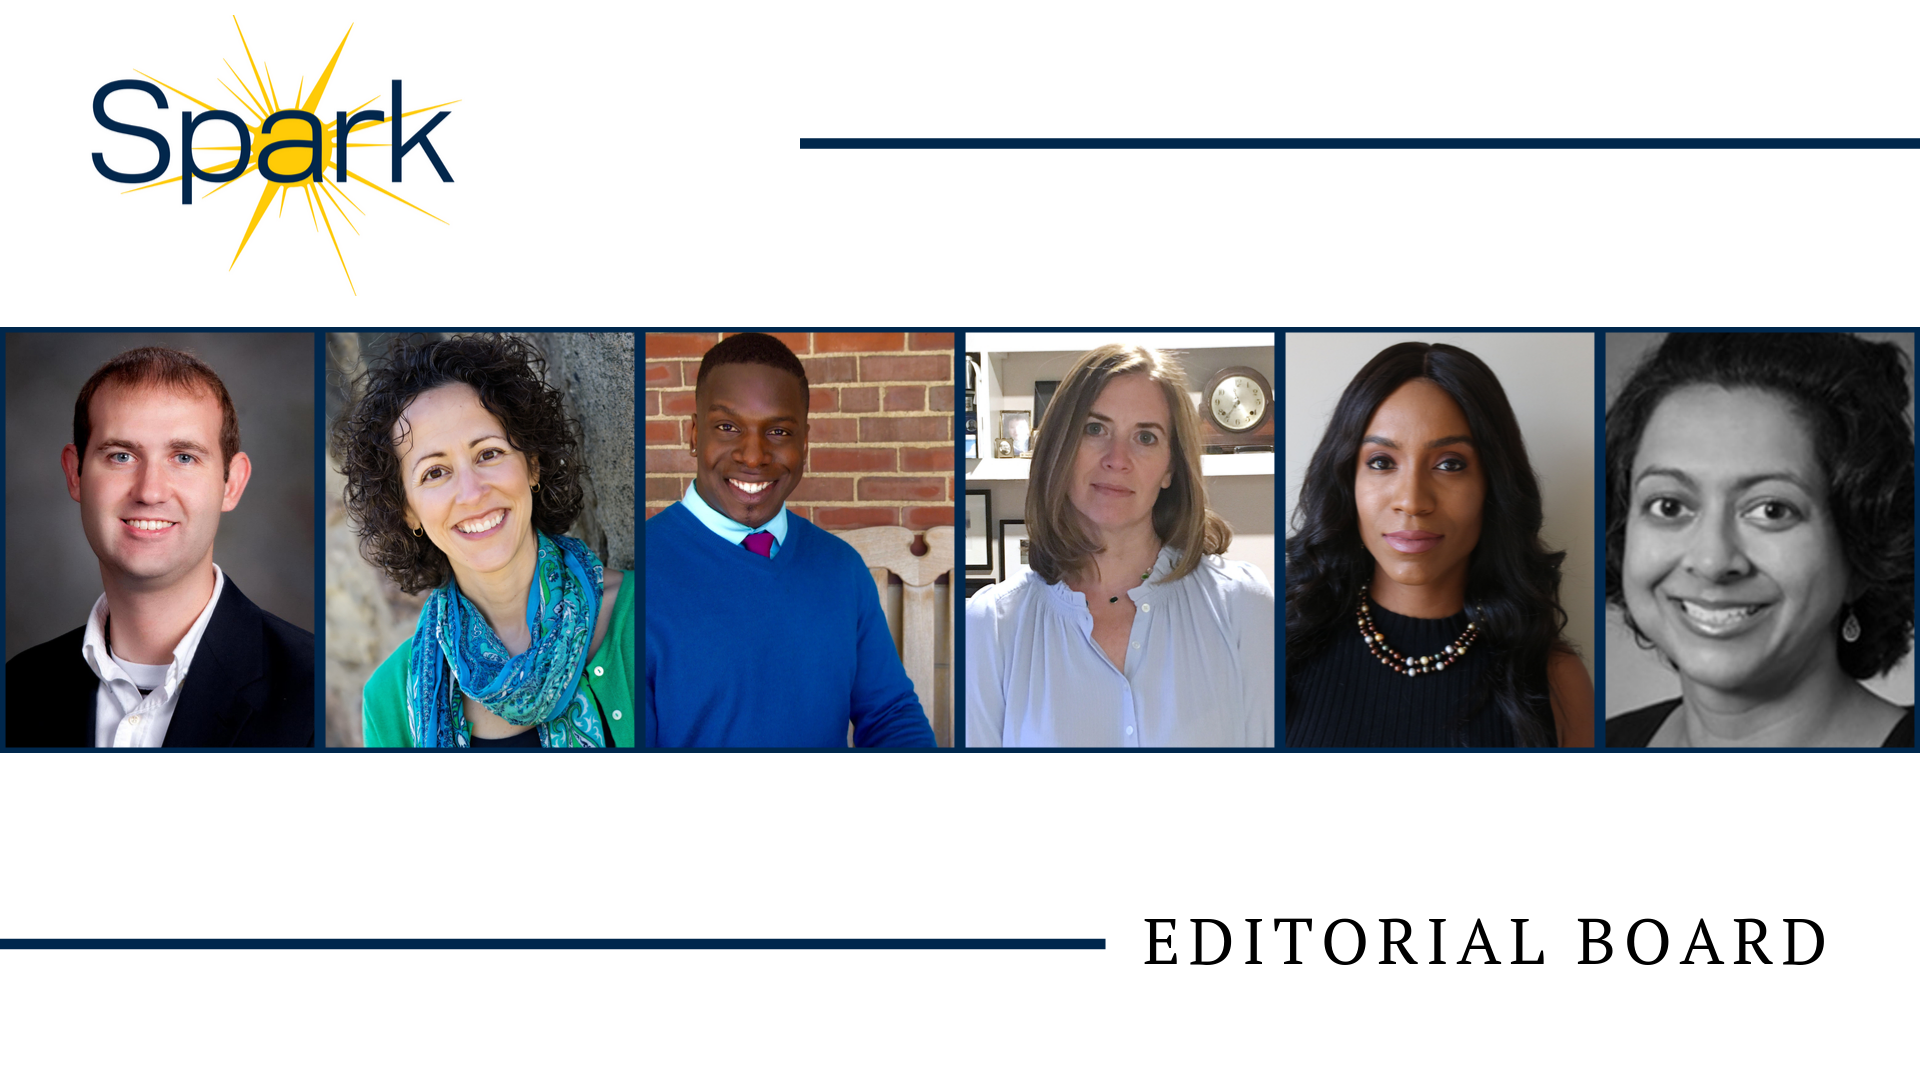 Editorial Board Left to Right: W. Carson Byrd, Annmarie Caño, David Green Jr, Rebekah Modrak, Akilah Wise, Lata Murti